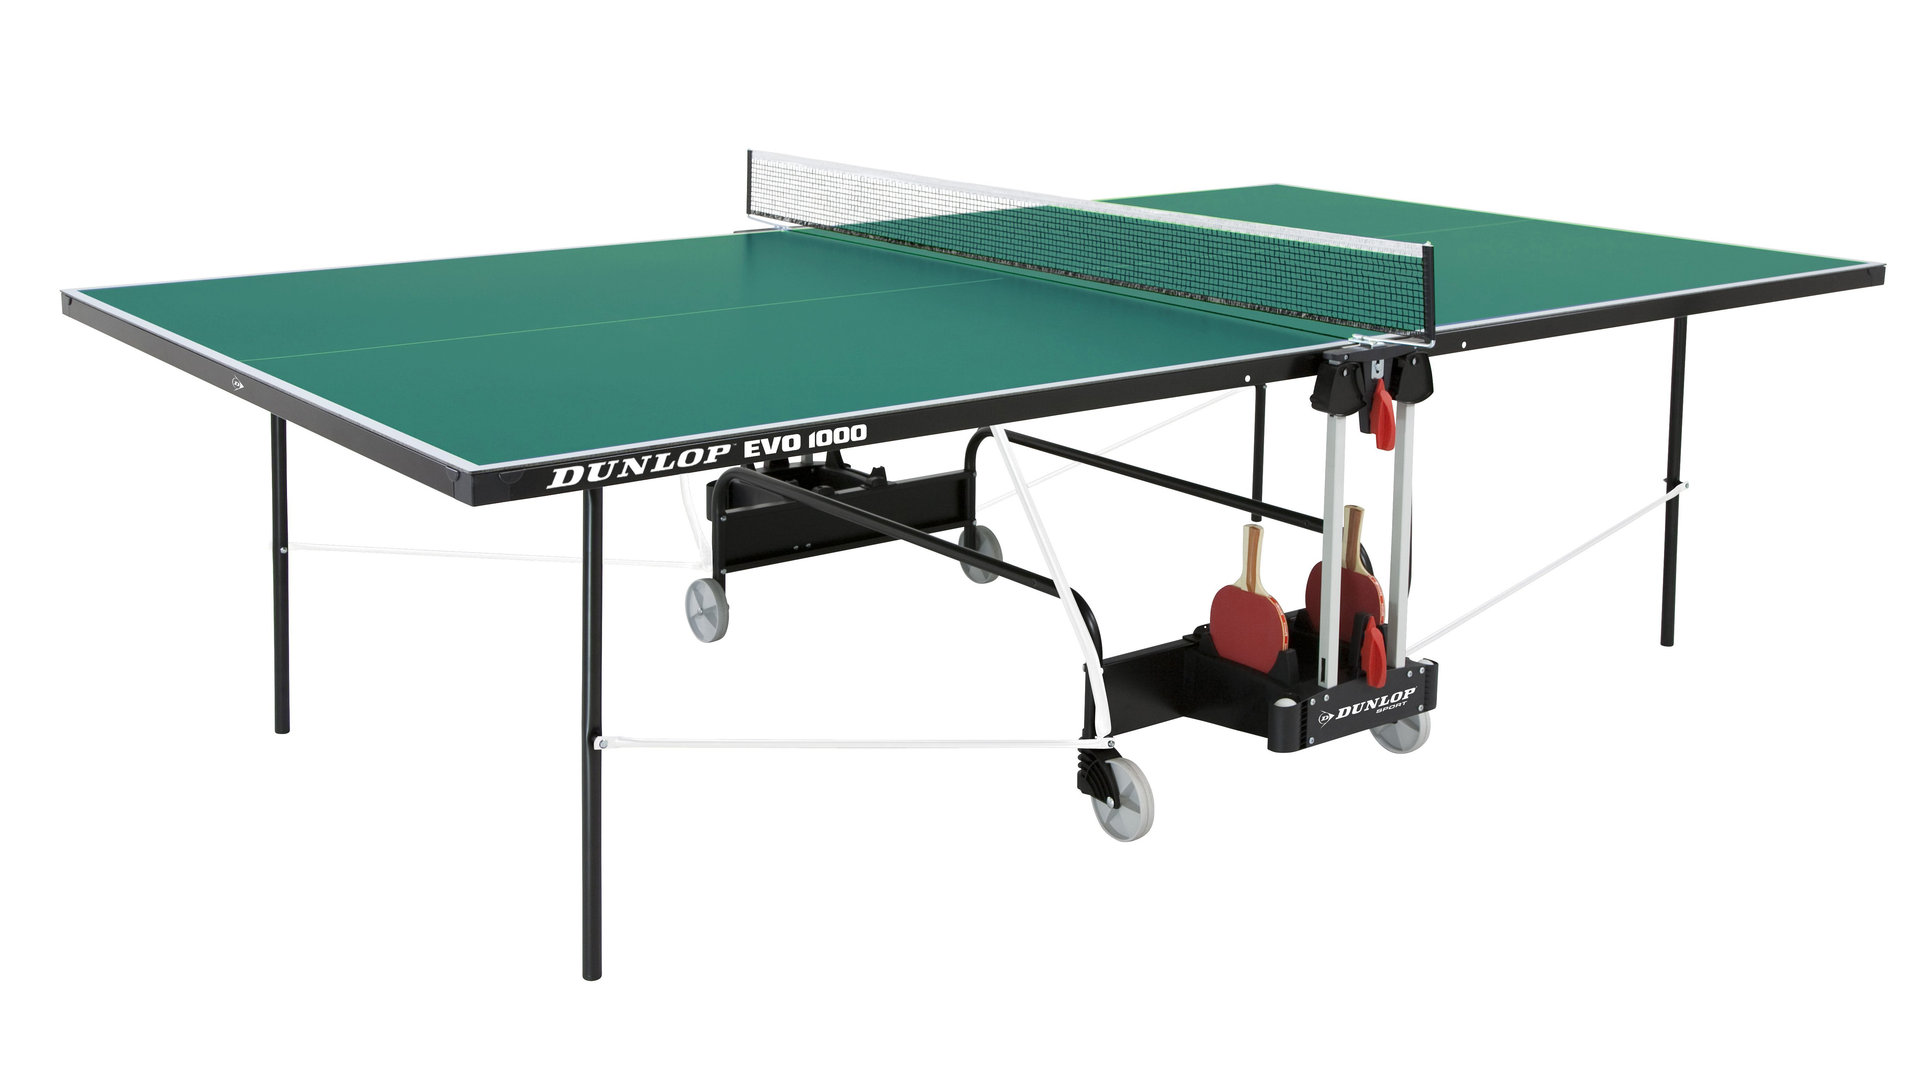 Dunlop evo 1000 full size outdoor playback table tennis - Full size table tennis table dimensions ...